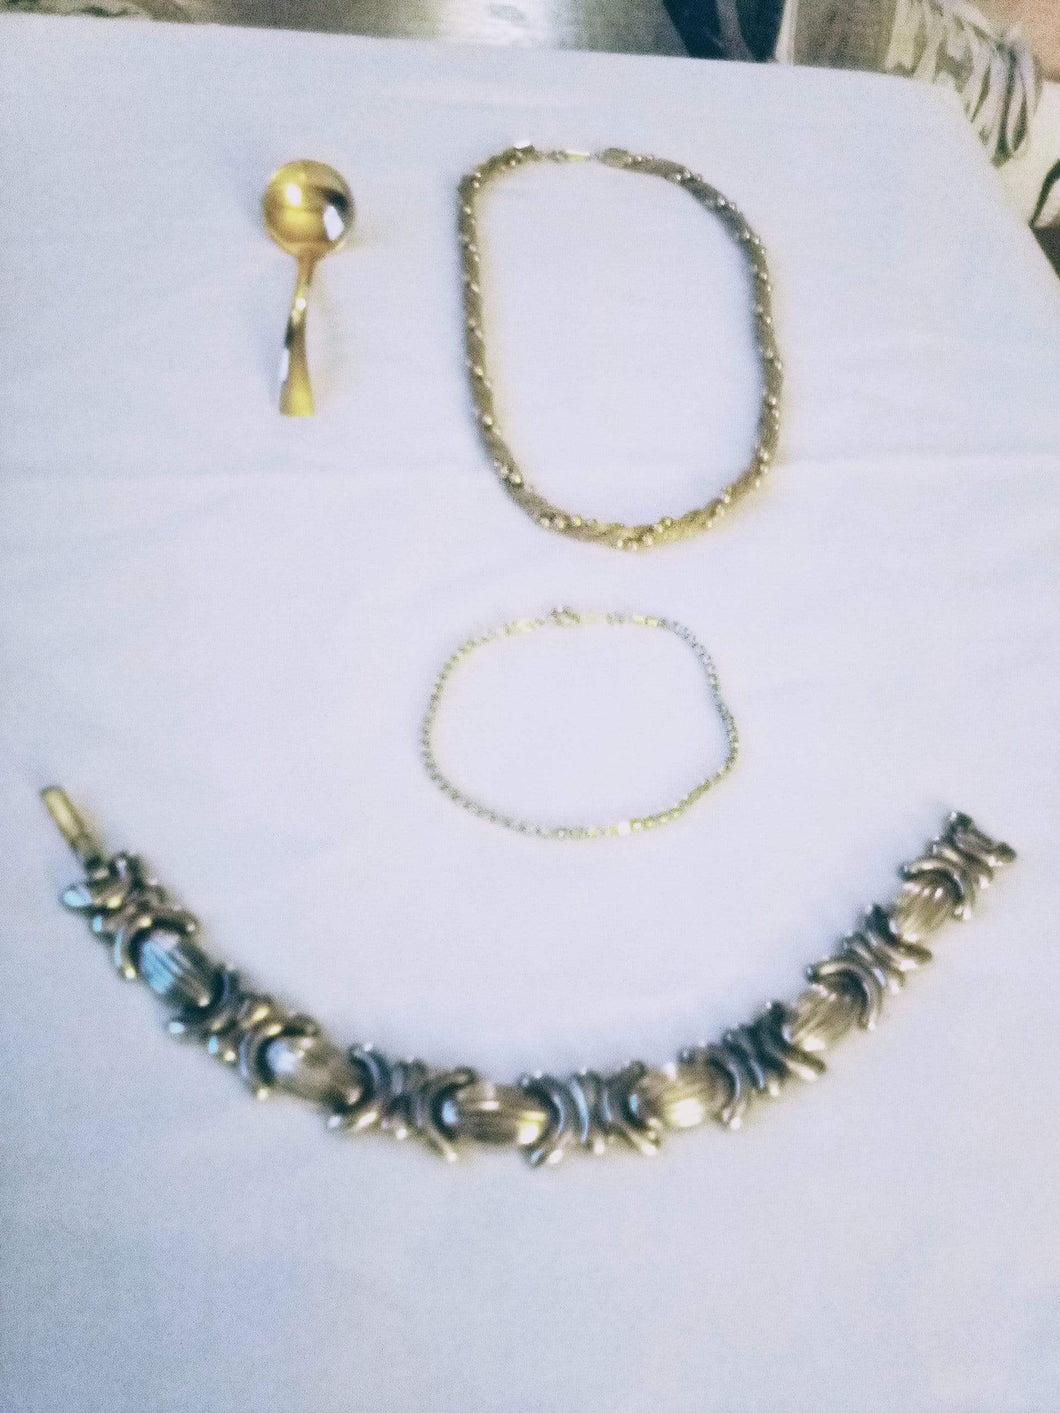 Avon marked jewelry lot - B&P'sringsnthings